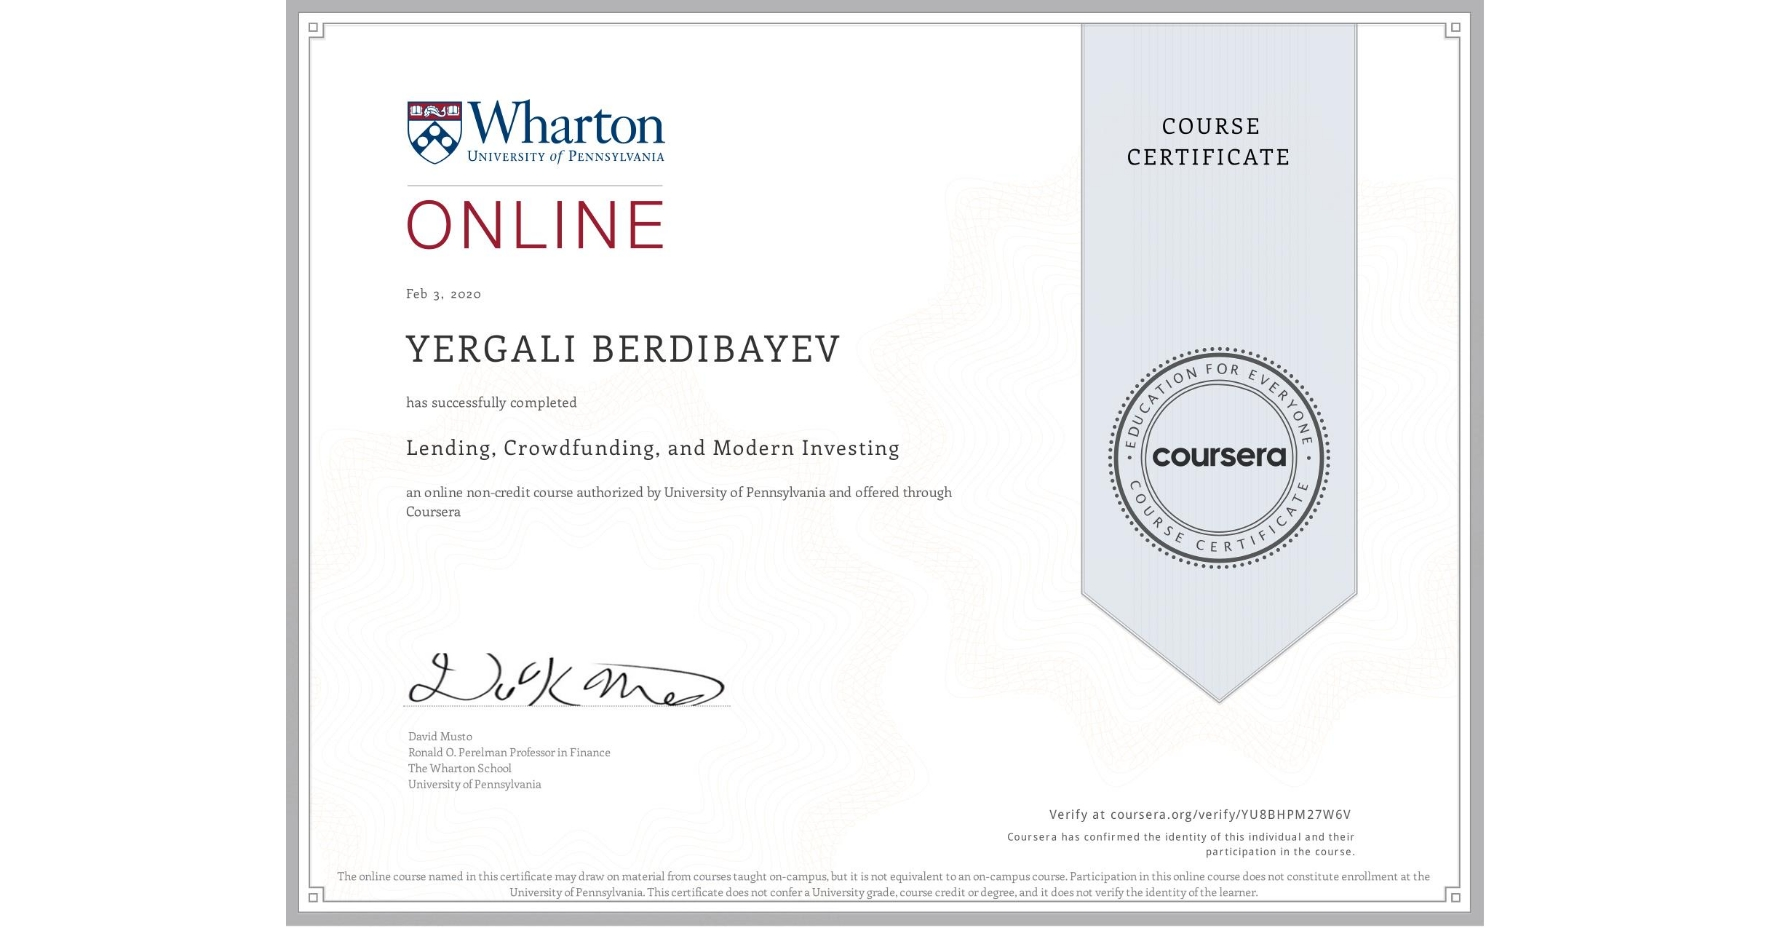 View certificate for Yergali Berdibayev, Lending, Crowdfunding, and Modern Investing, an online non-credit course authorized by University of Pennsylvania and offered through Coursera